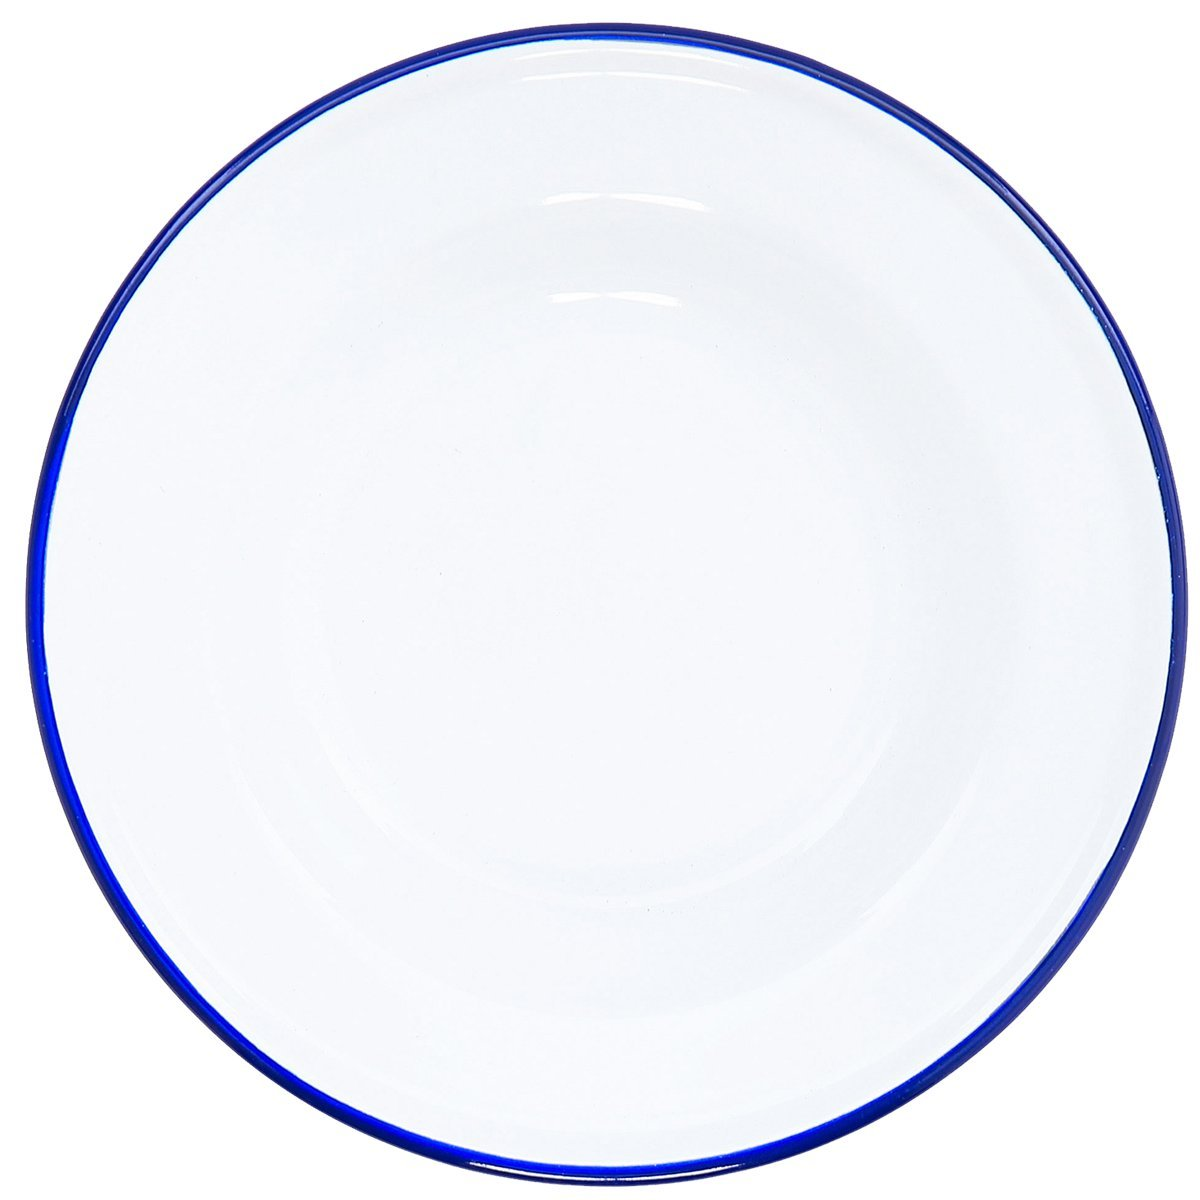 Crow Canyon Enamelware - Raised Salad Plate - Solid White with Blue Rim